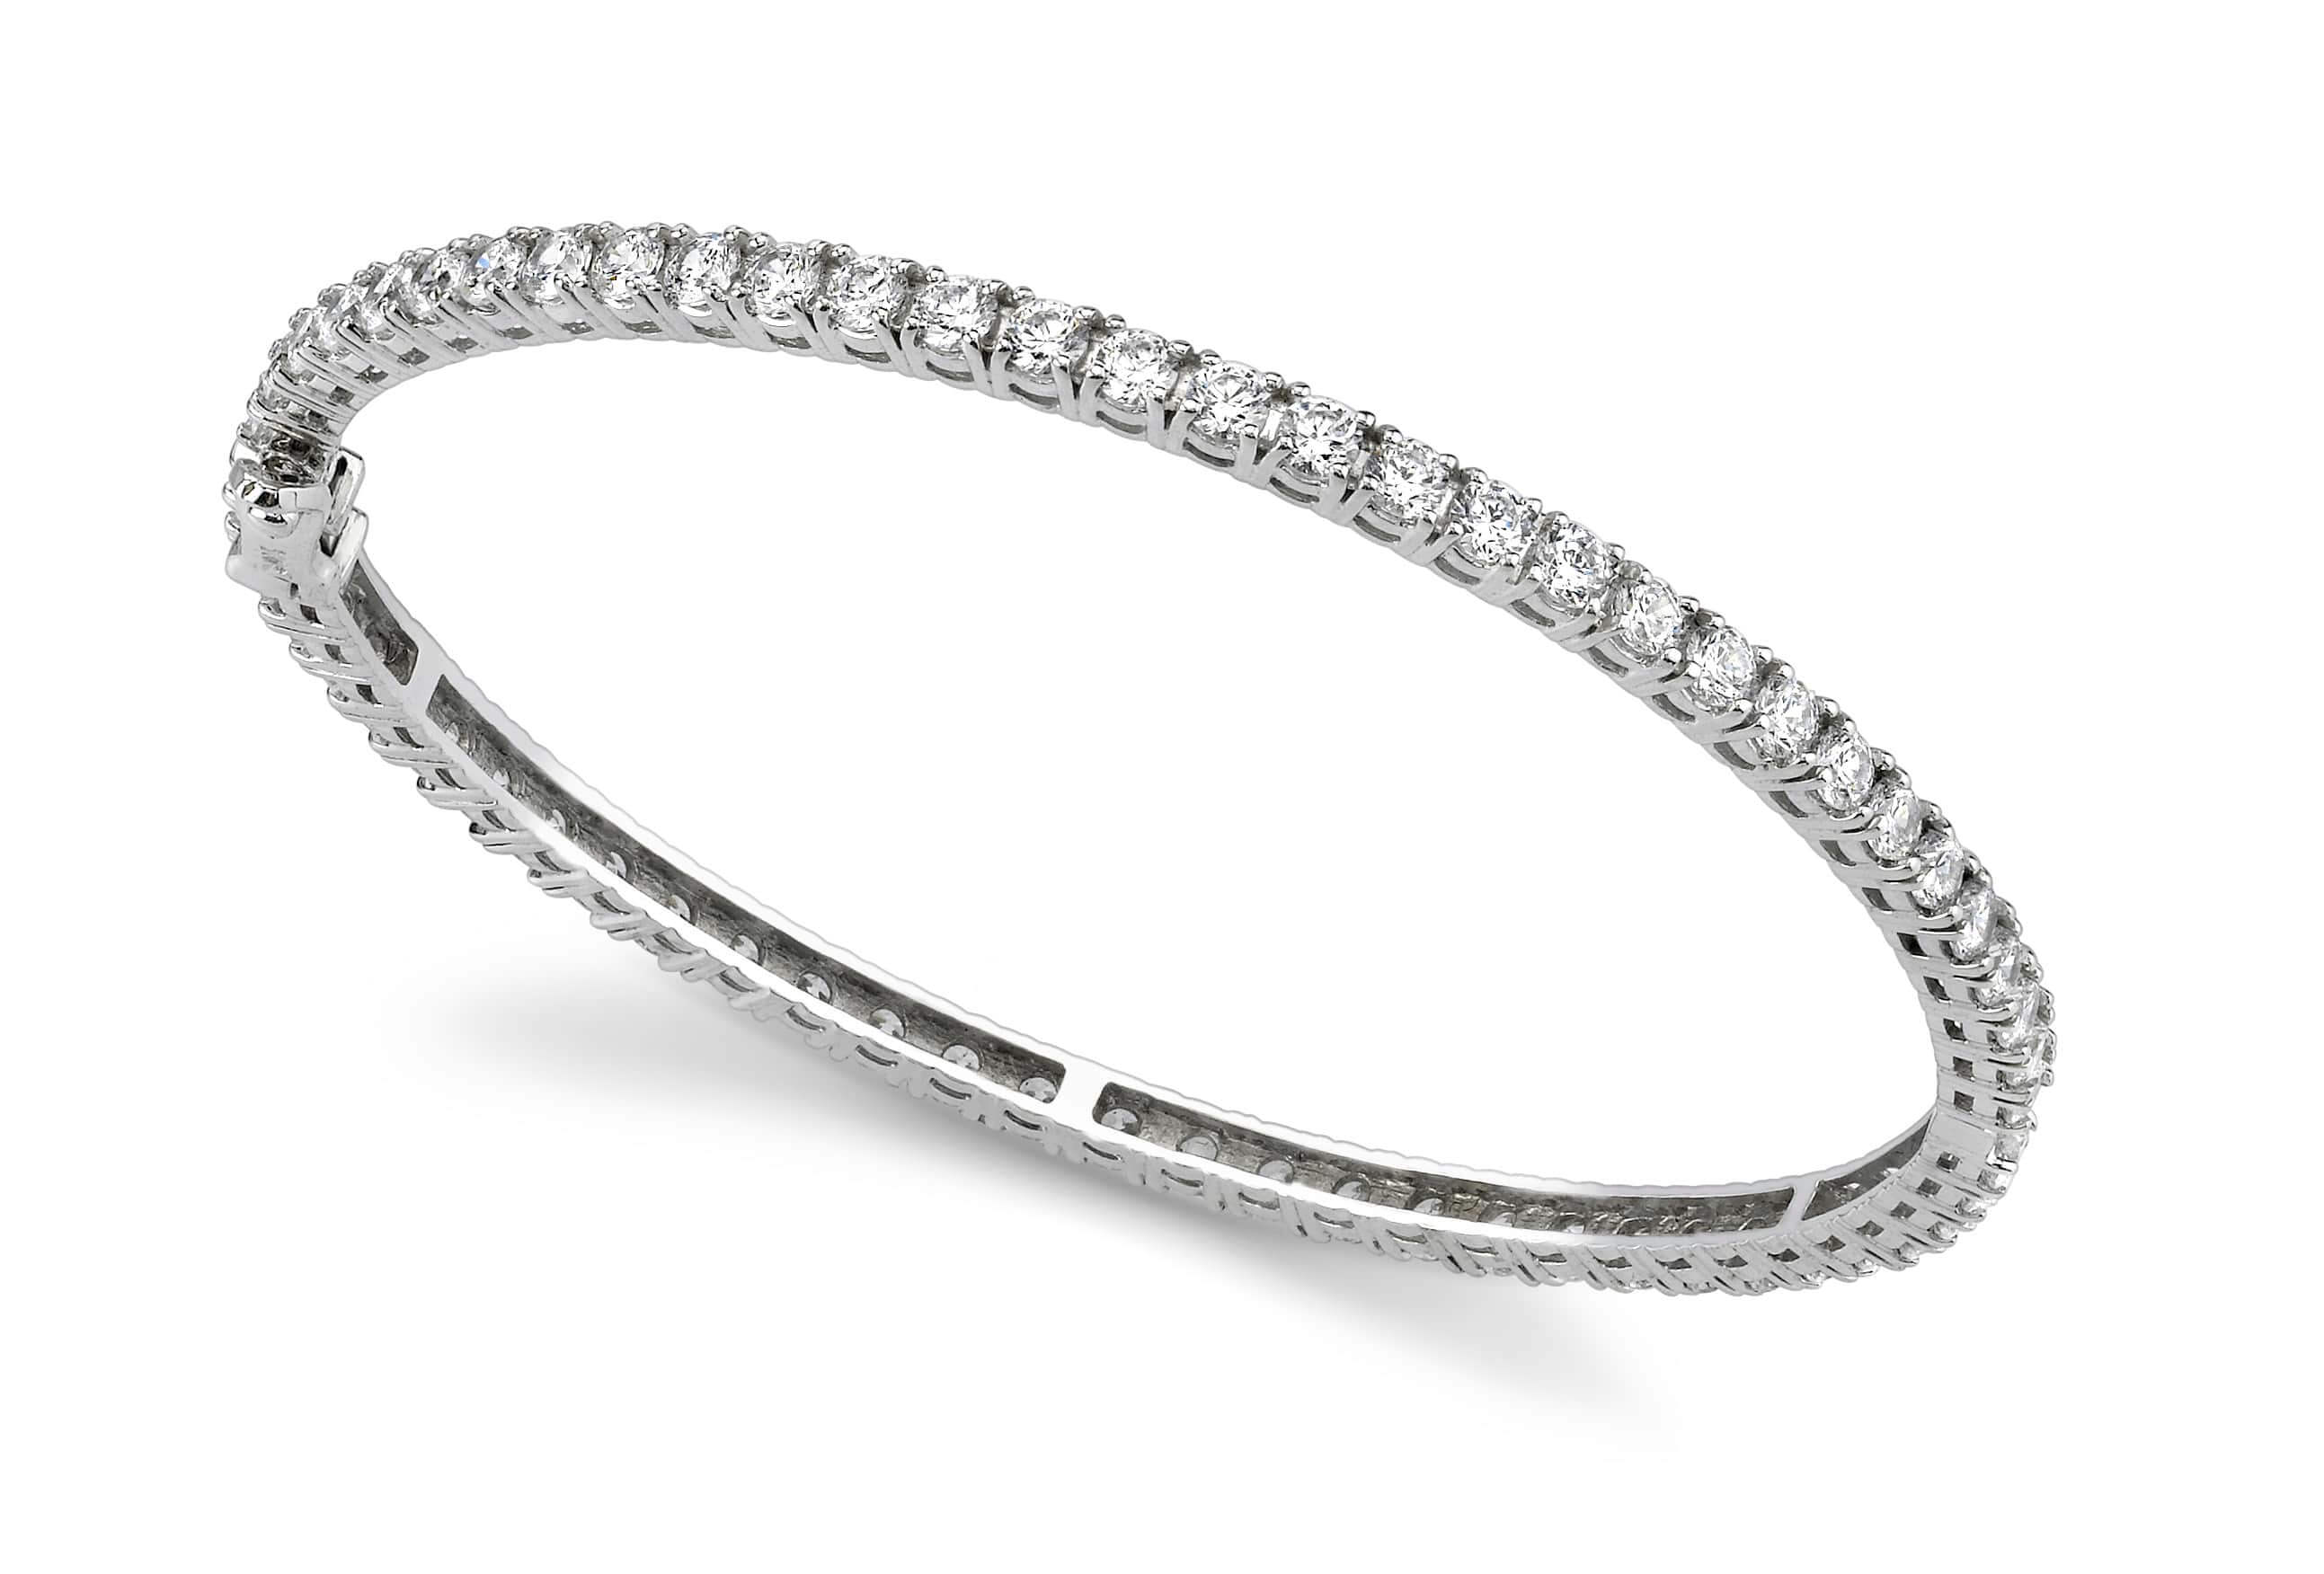 jewelry diamond silver in bangles bracelet bangle with diamonds sterling rhinoceros pave jb set